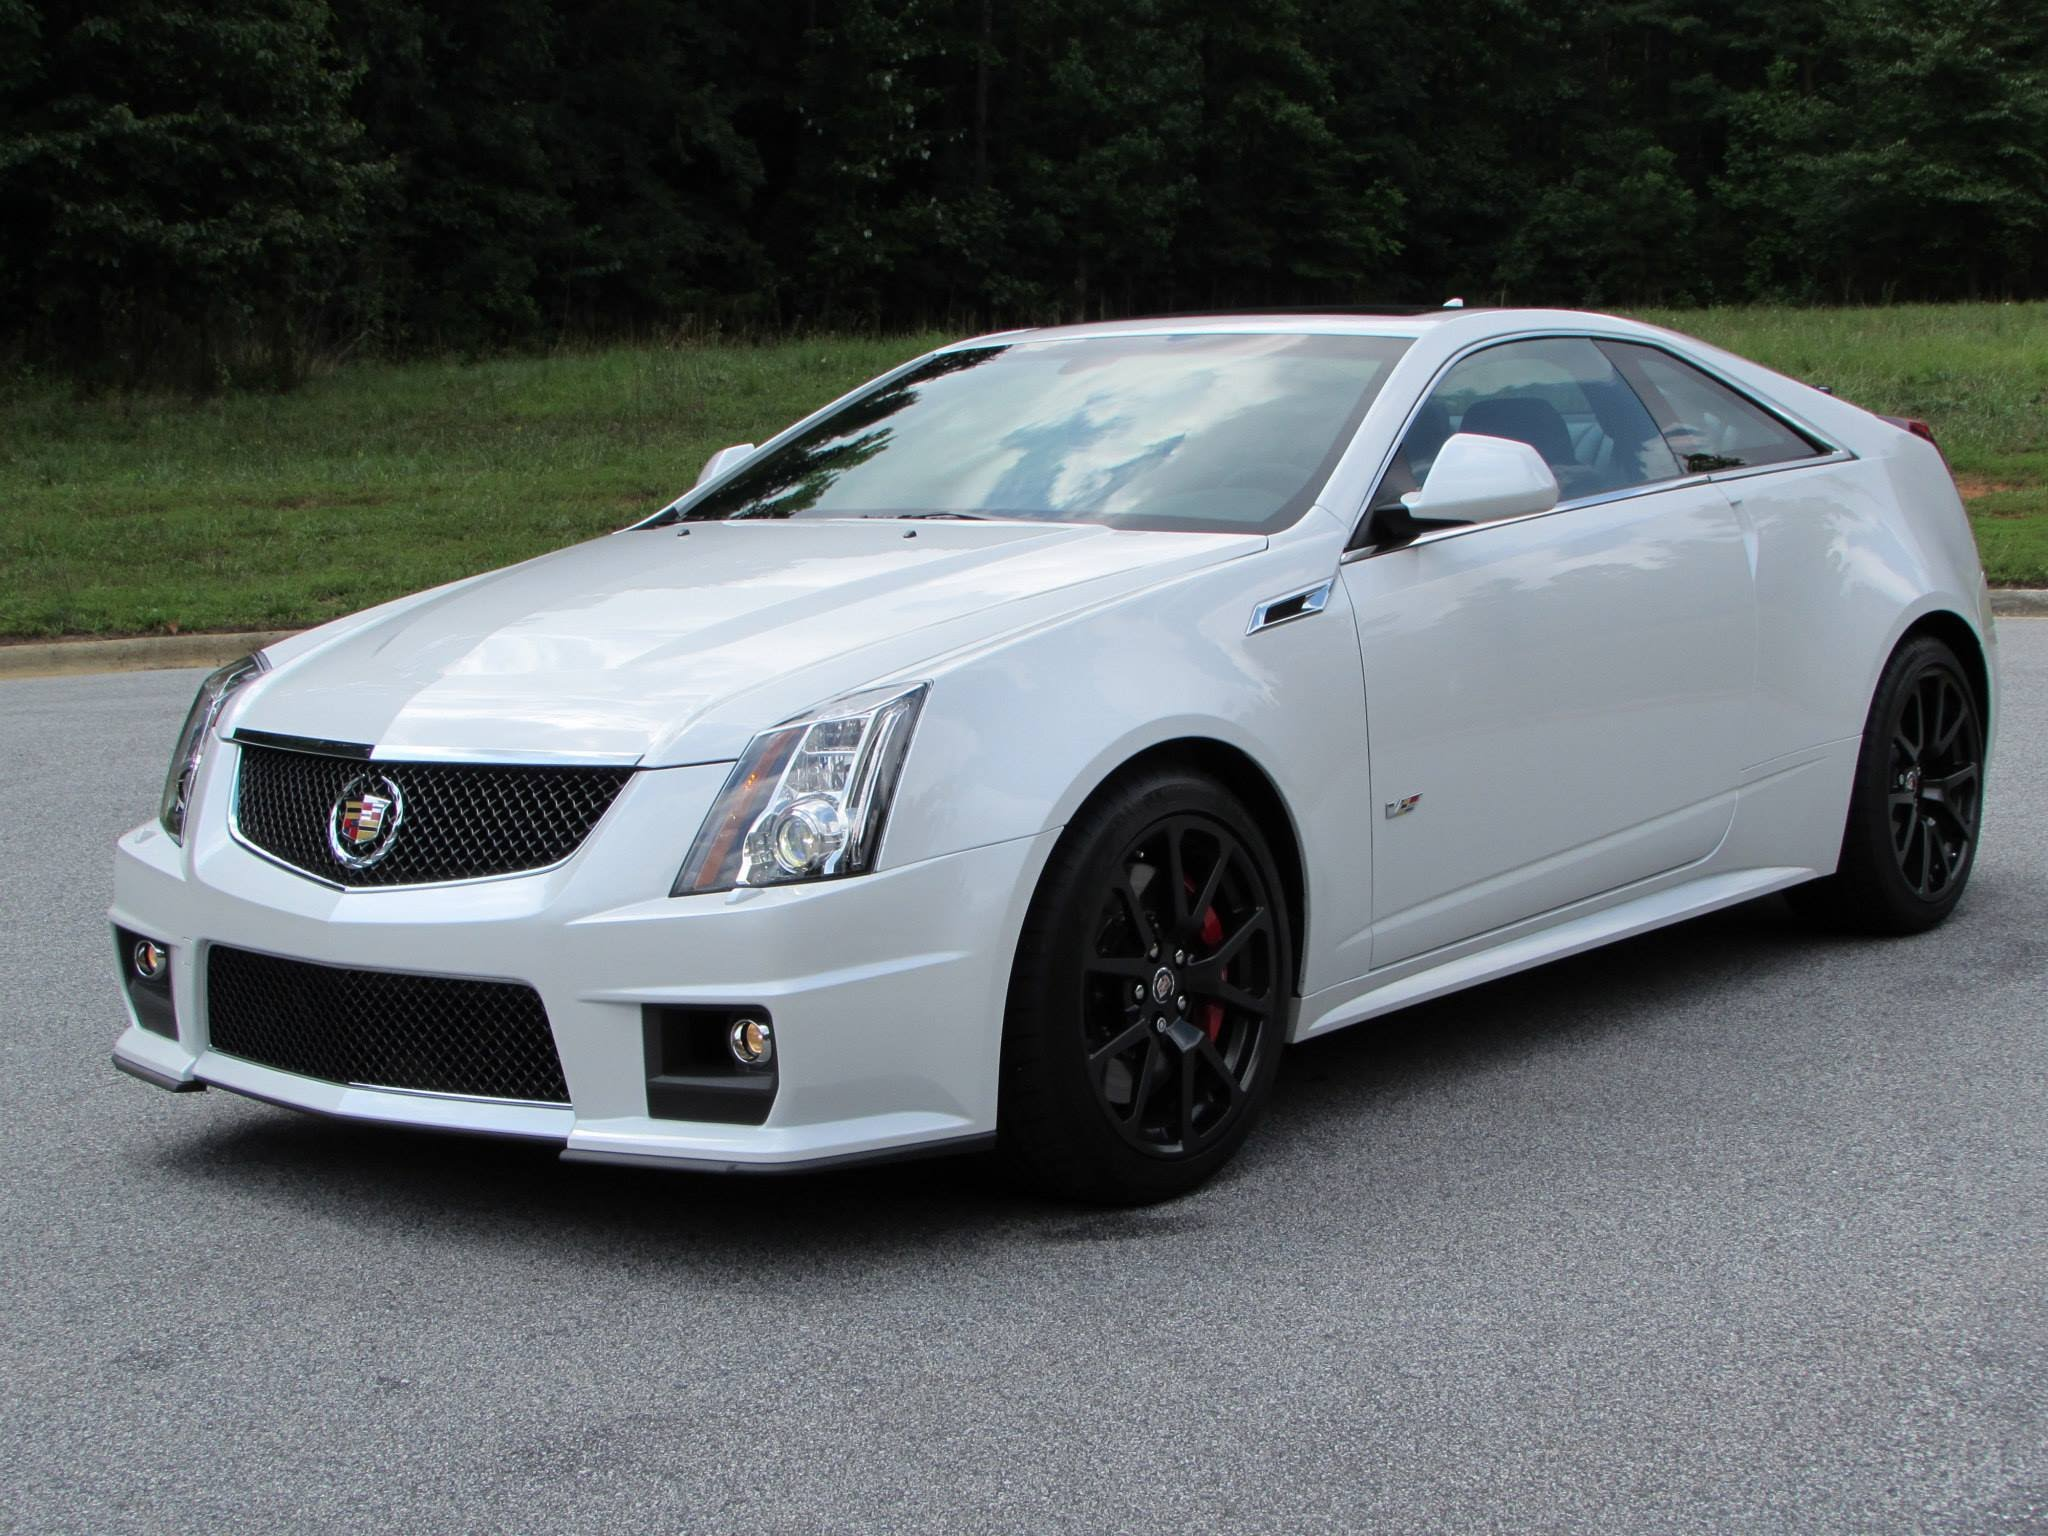 Cadillac Cts-v Coupe #4